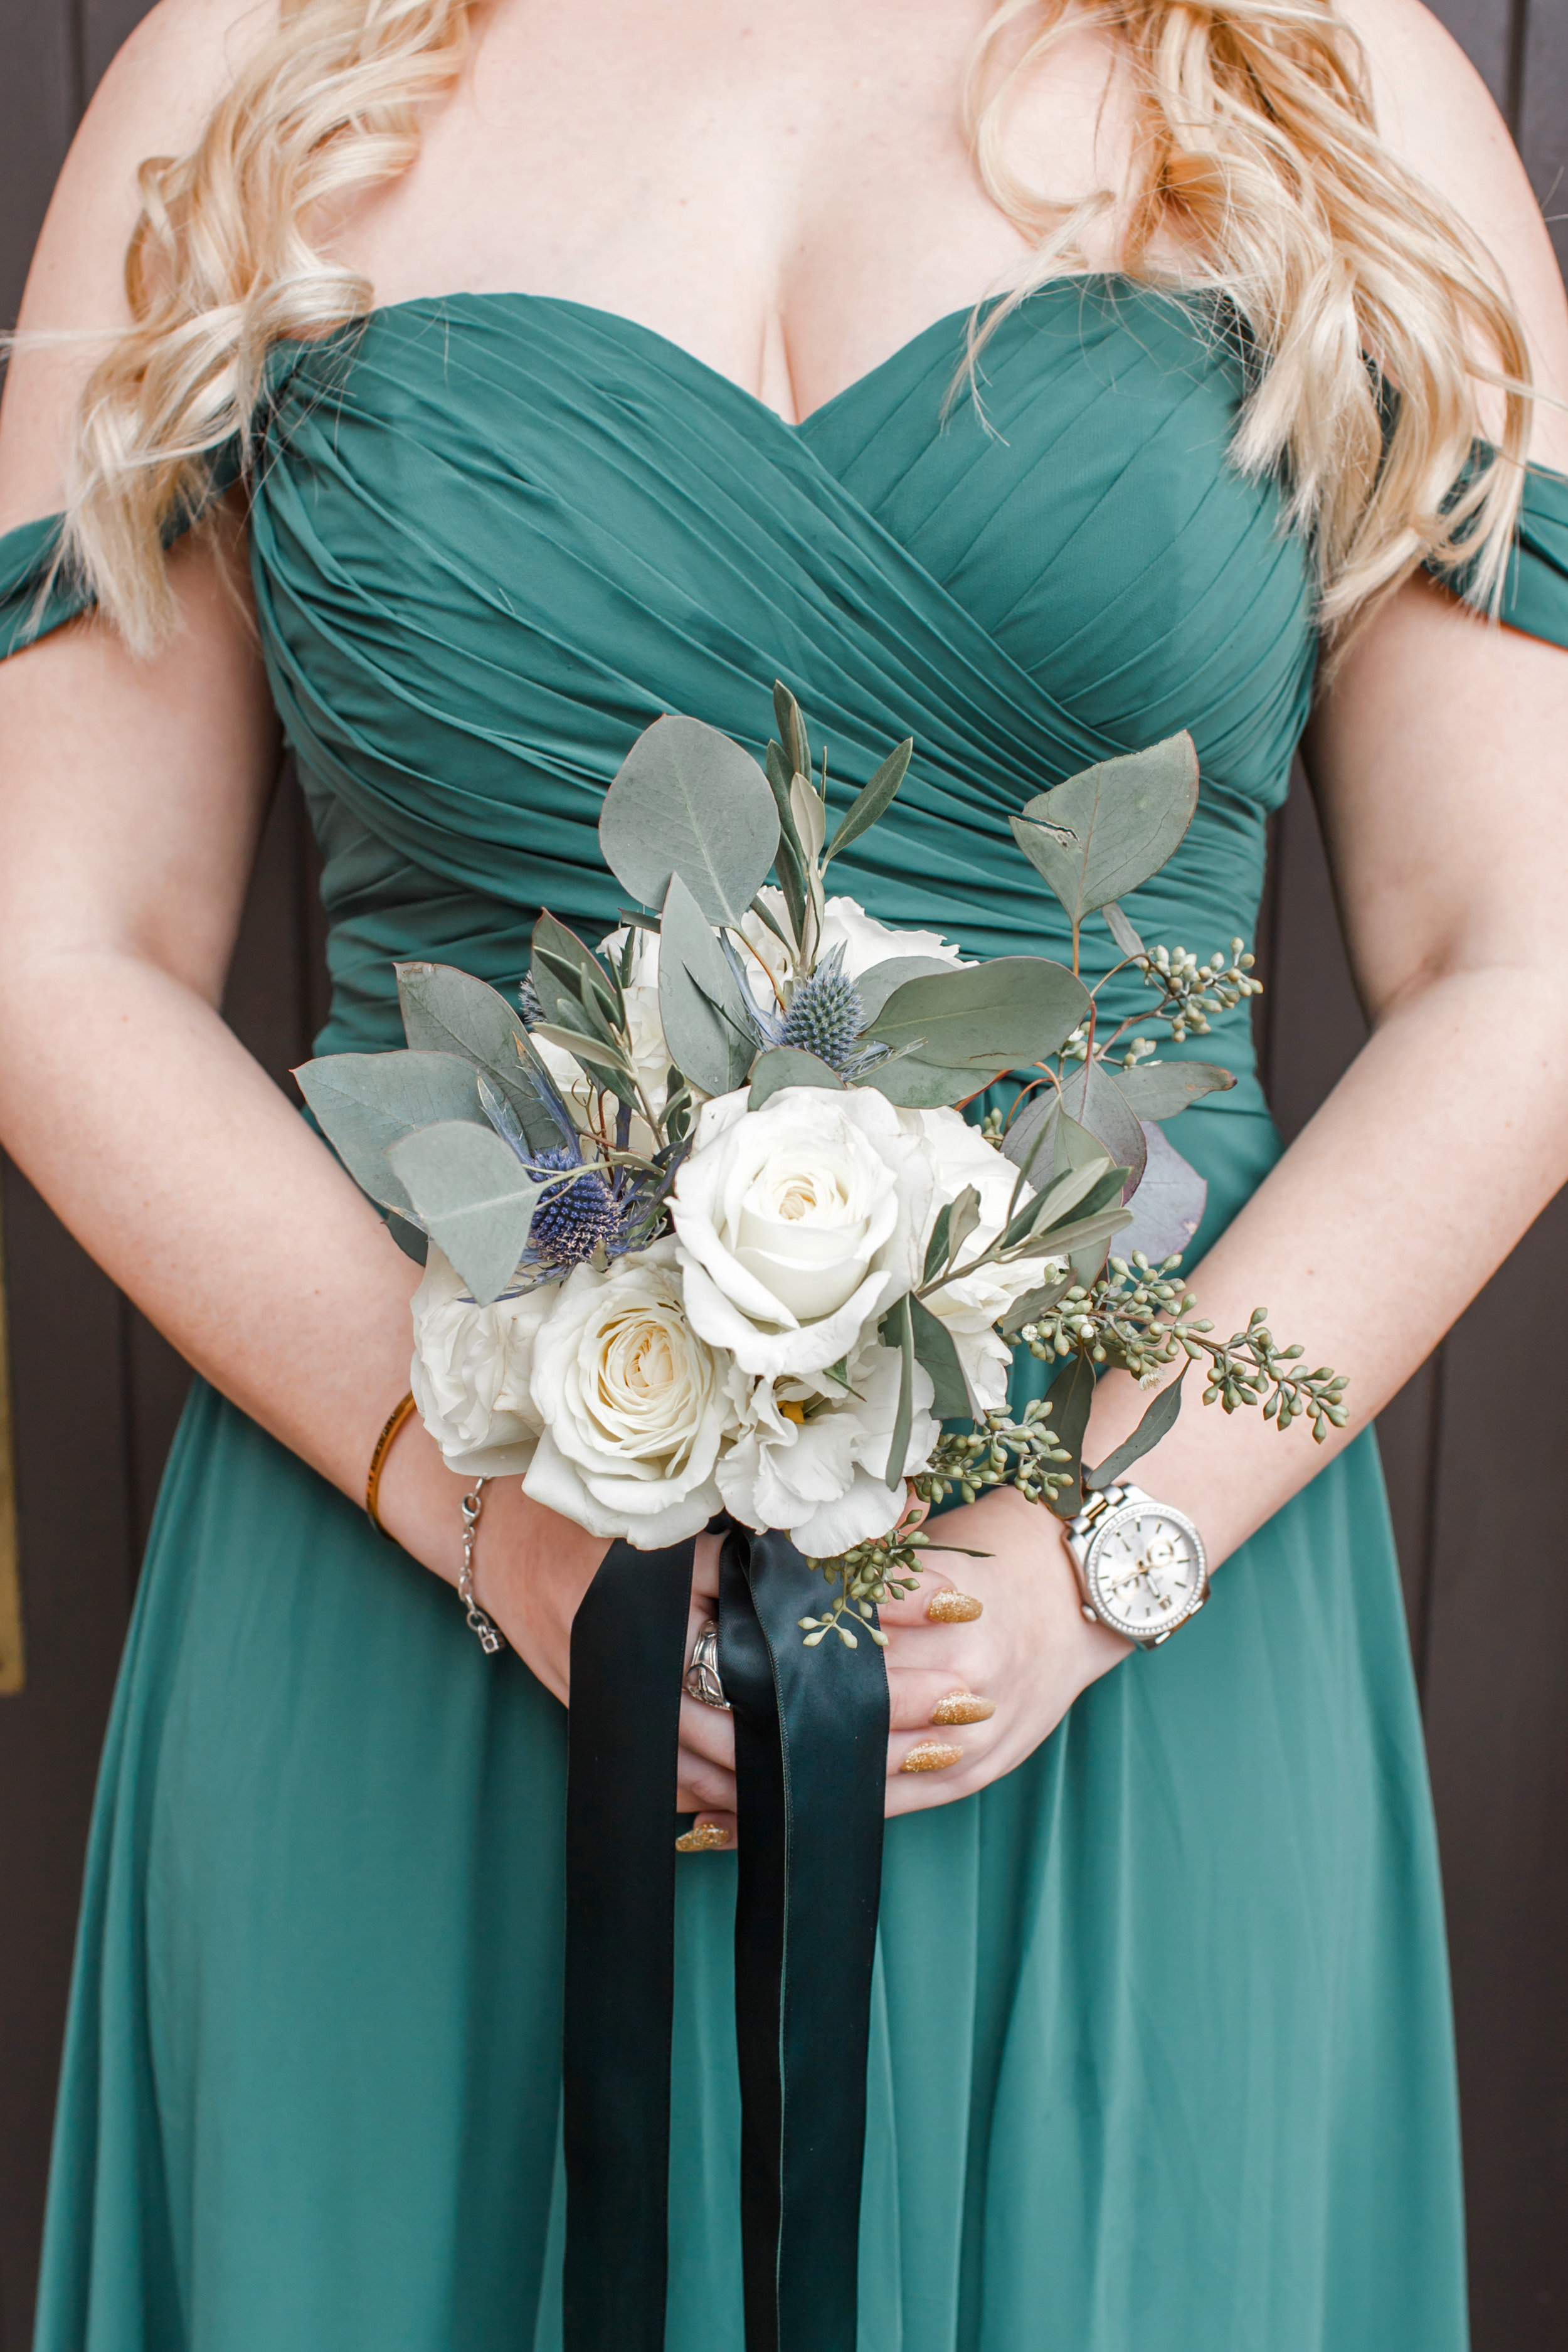 ivory_and_beau_couple_florals_ivory_and_beau_florists_savannah_georiga_wedding_florist_wedding_flowers_7.jpg